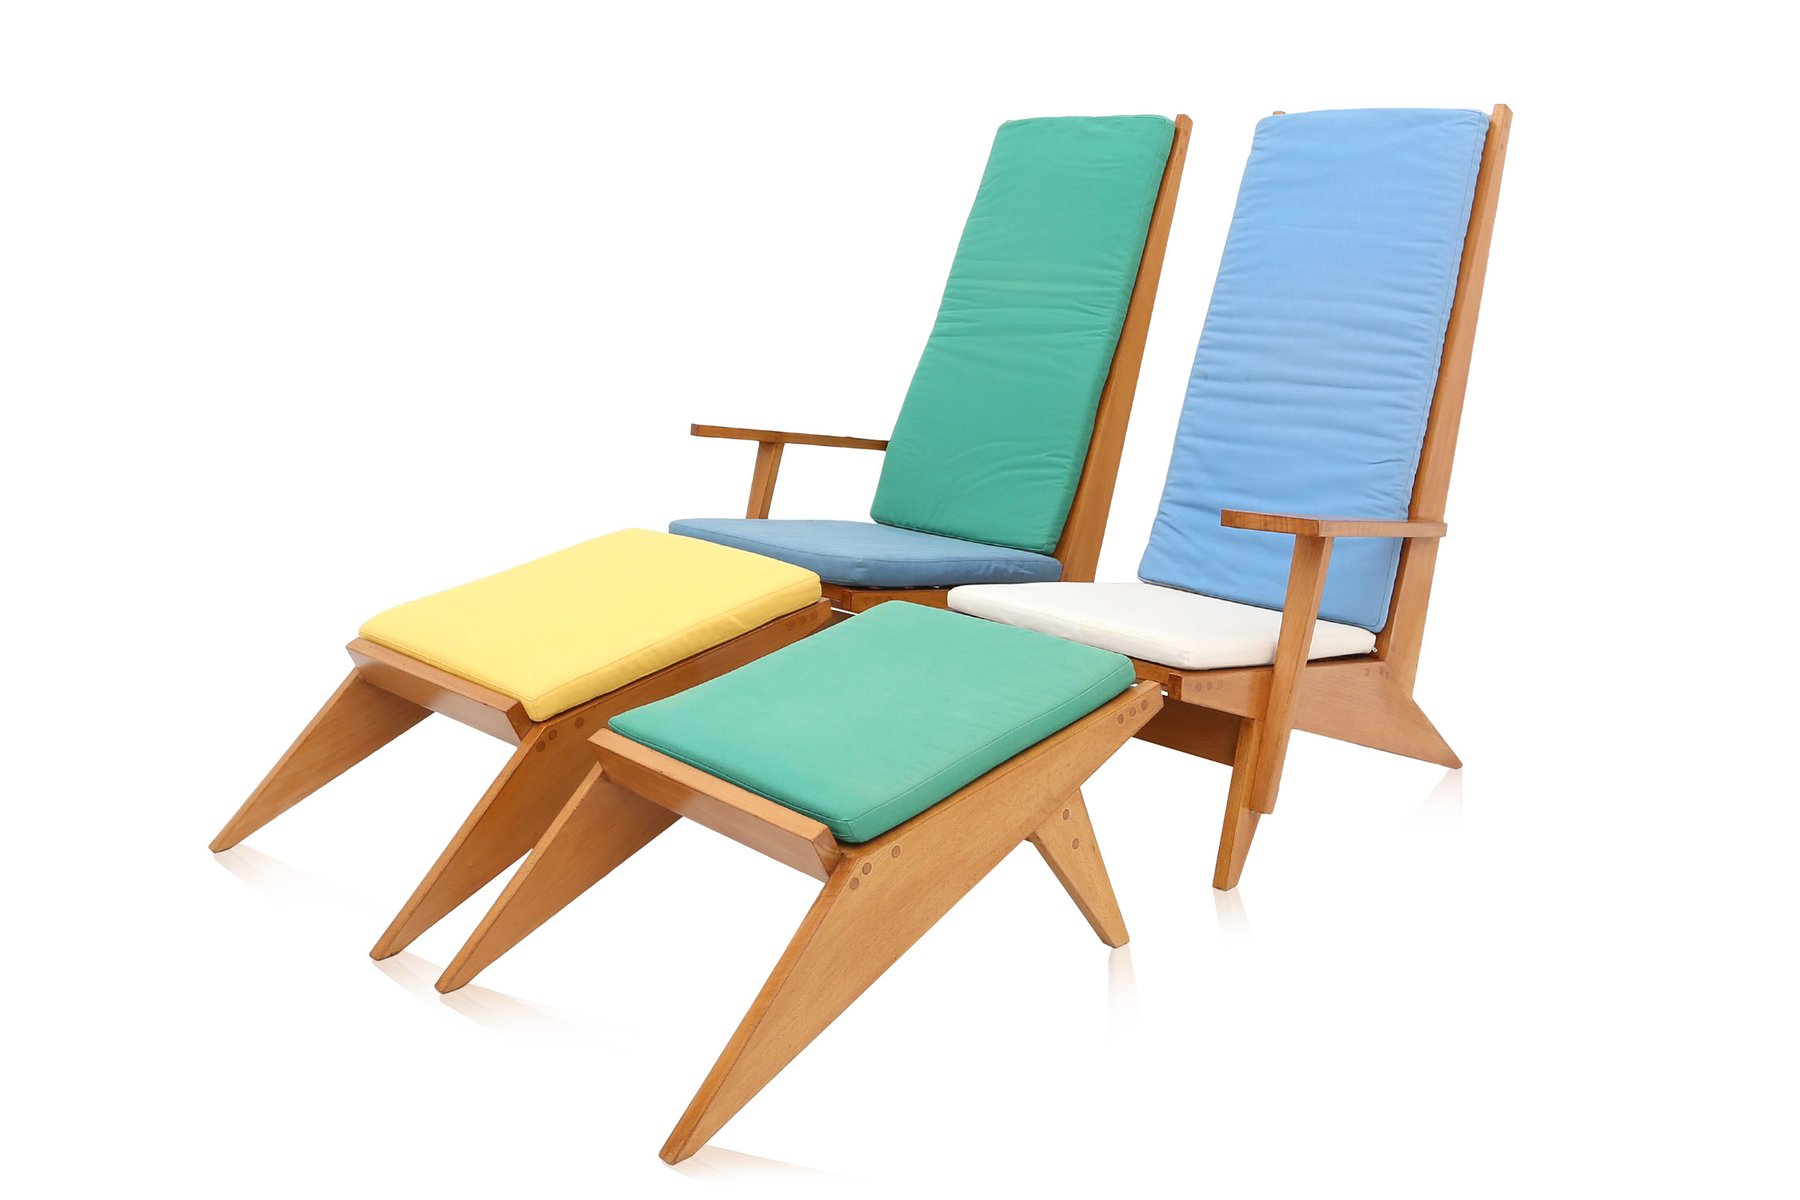 Swimming pool chairs best home design 2018 for Pool design 1970